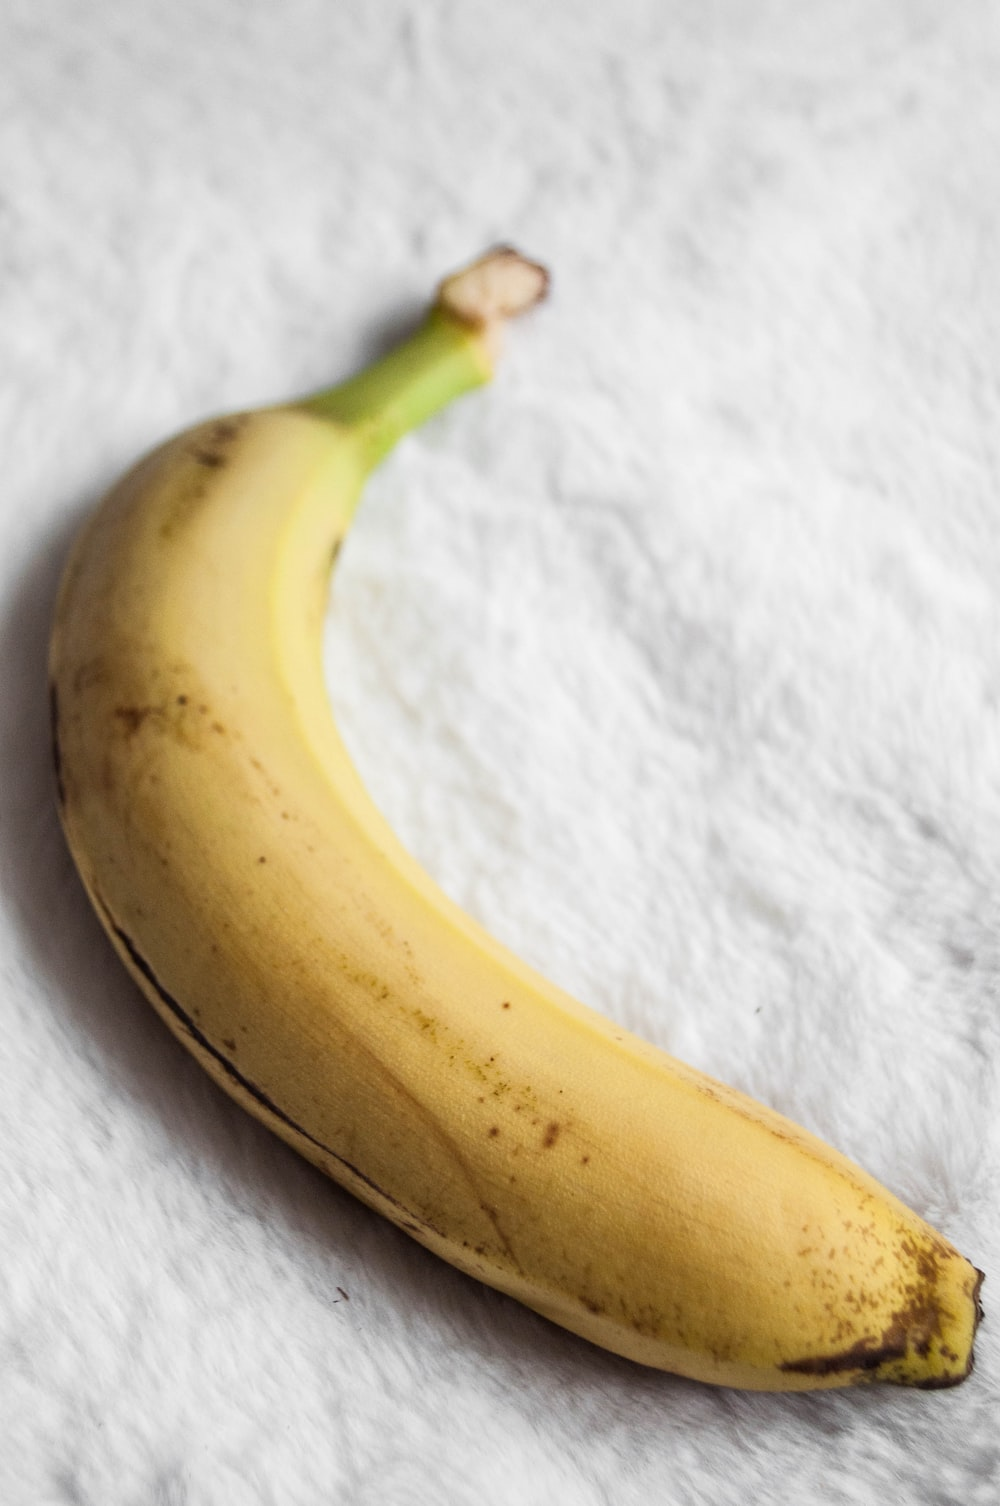 yellow banana on white textile